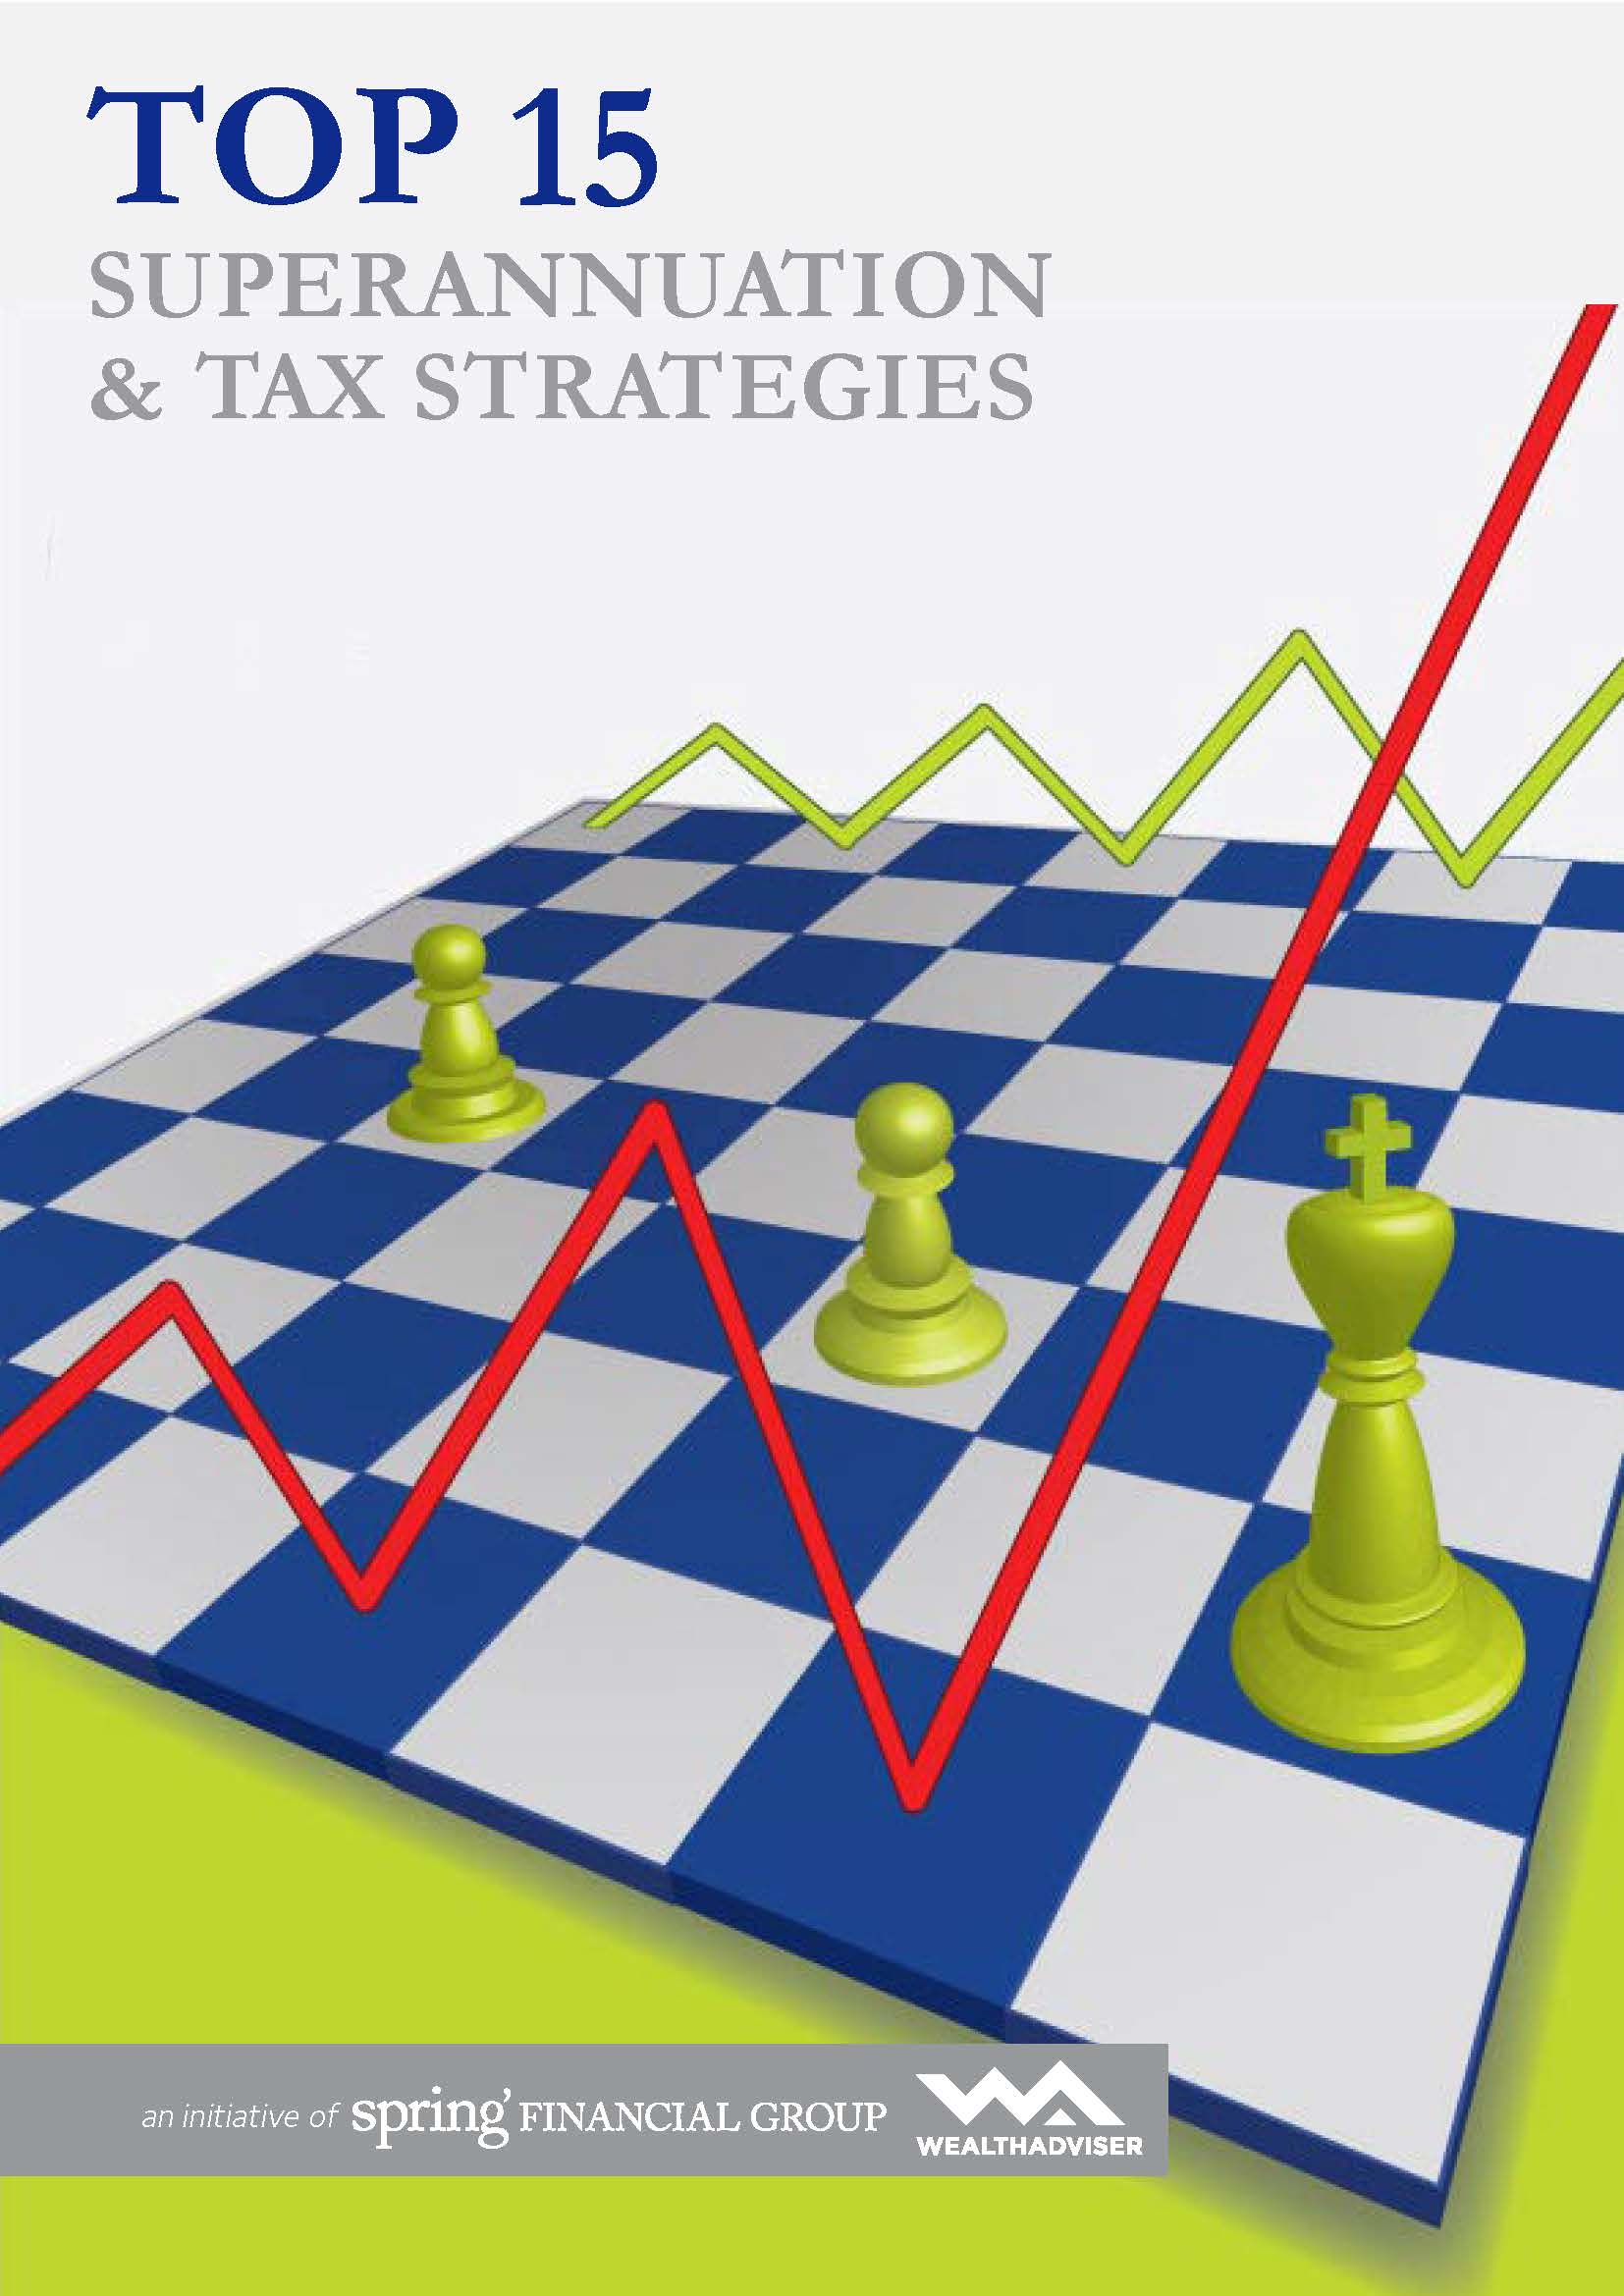 Top 15 Super and Tax Strategies - eBook cover